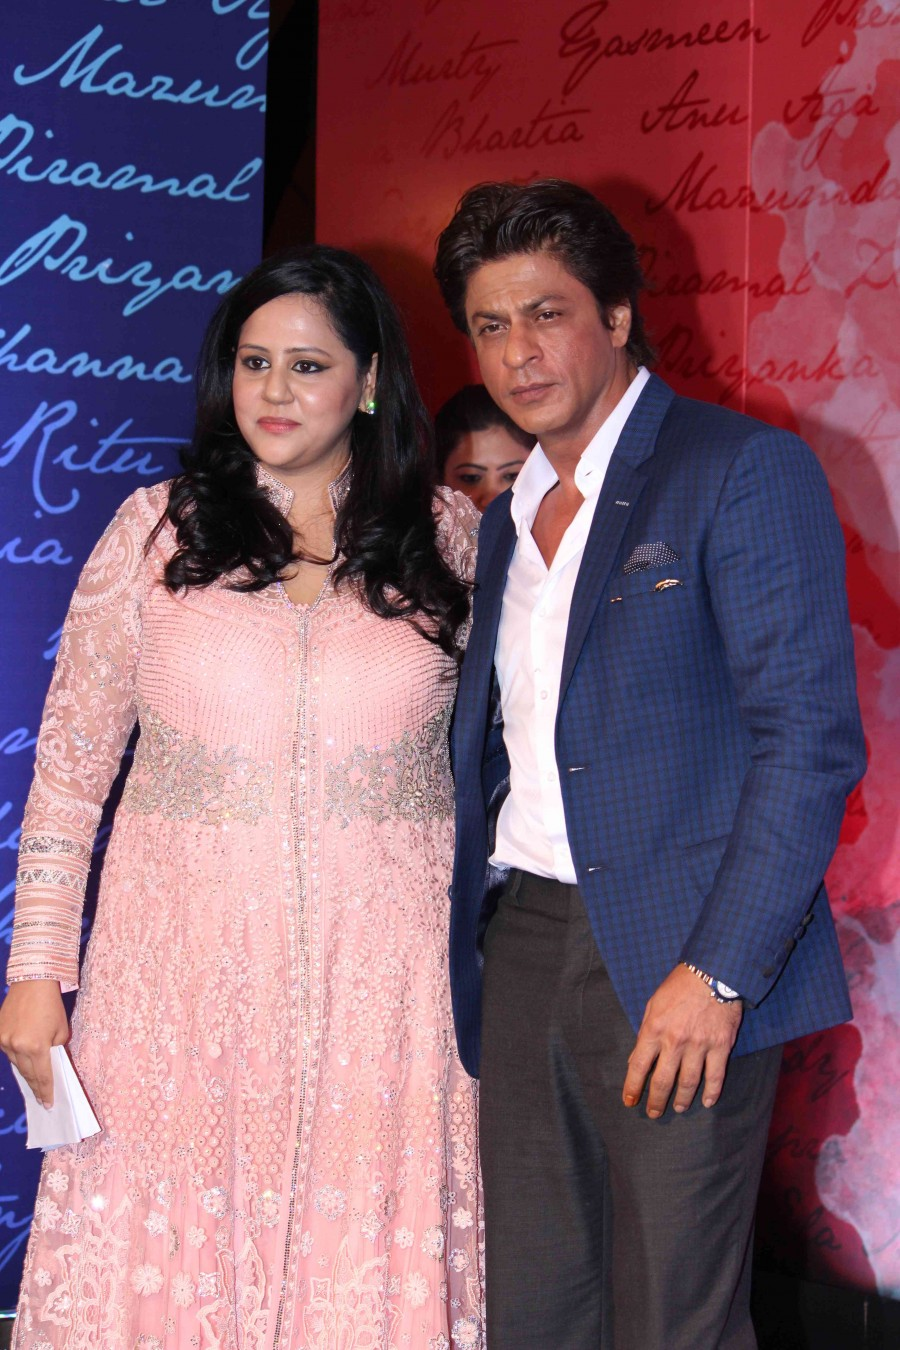 Shahrukh Khan,Neeta Ambani,Shahrukh Khan launches Gunjan Jain book,Neeta Ambani launches Gunjan Jain book,Gunjan Jain book,SRK,actor Shahrukh Khan,Shahrukh Khan latest pics,Shahrukh Khan latest images,Shahrukh Khan latest photos,Shahrukh Khan latest still